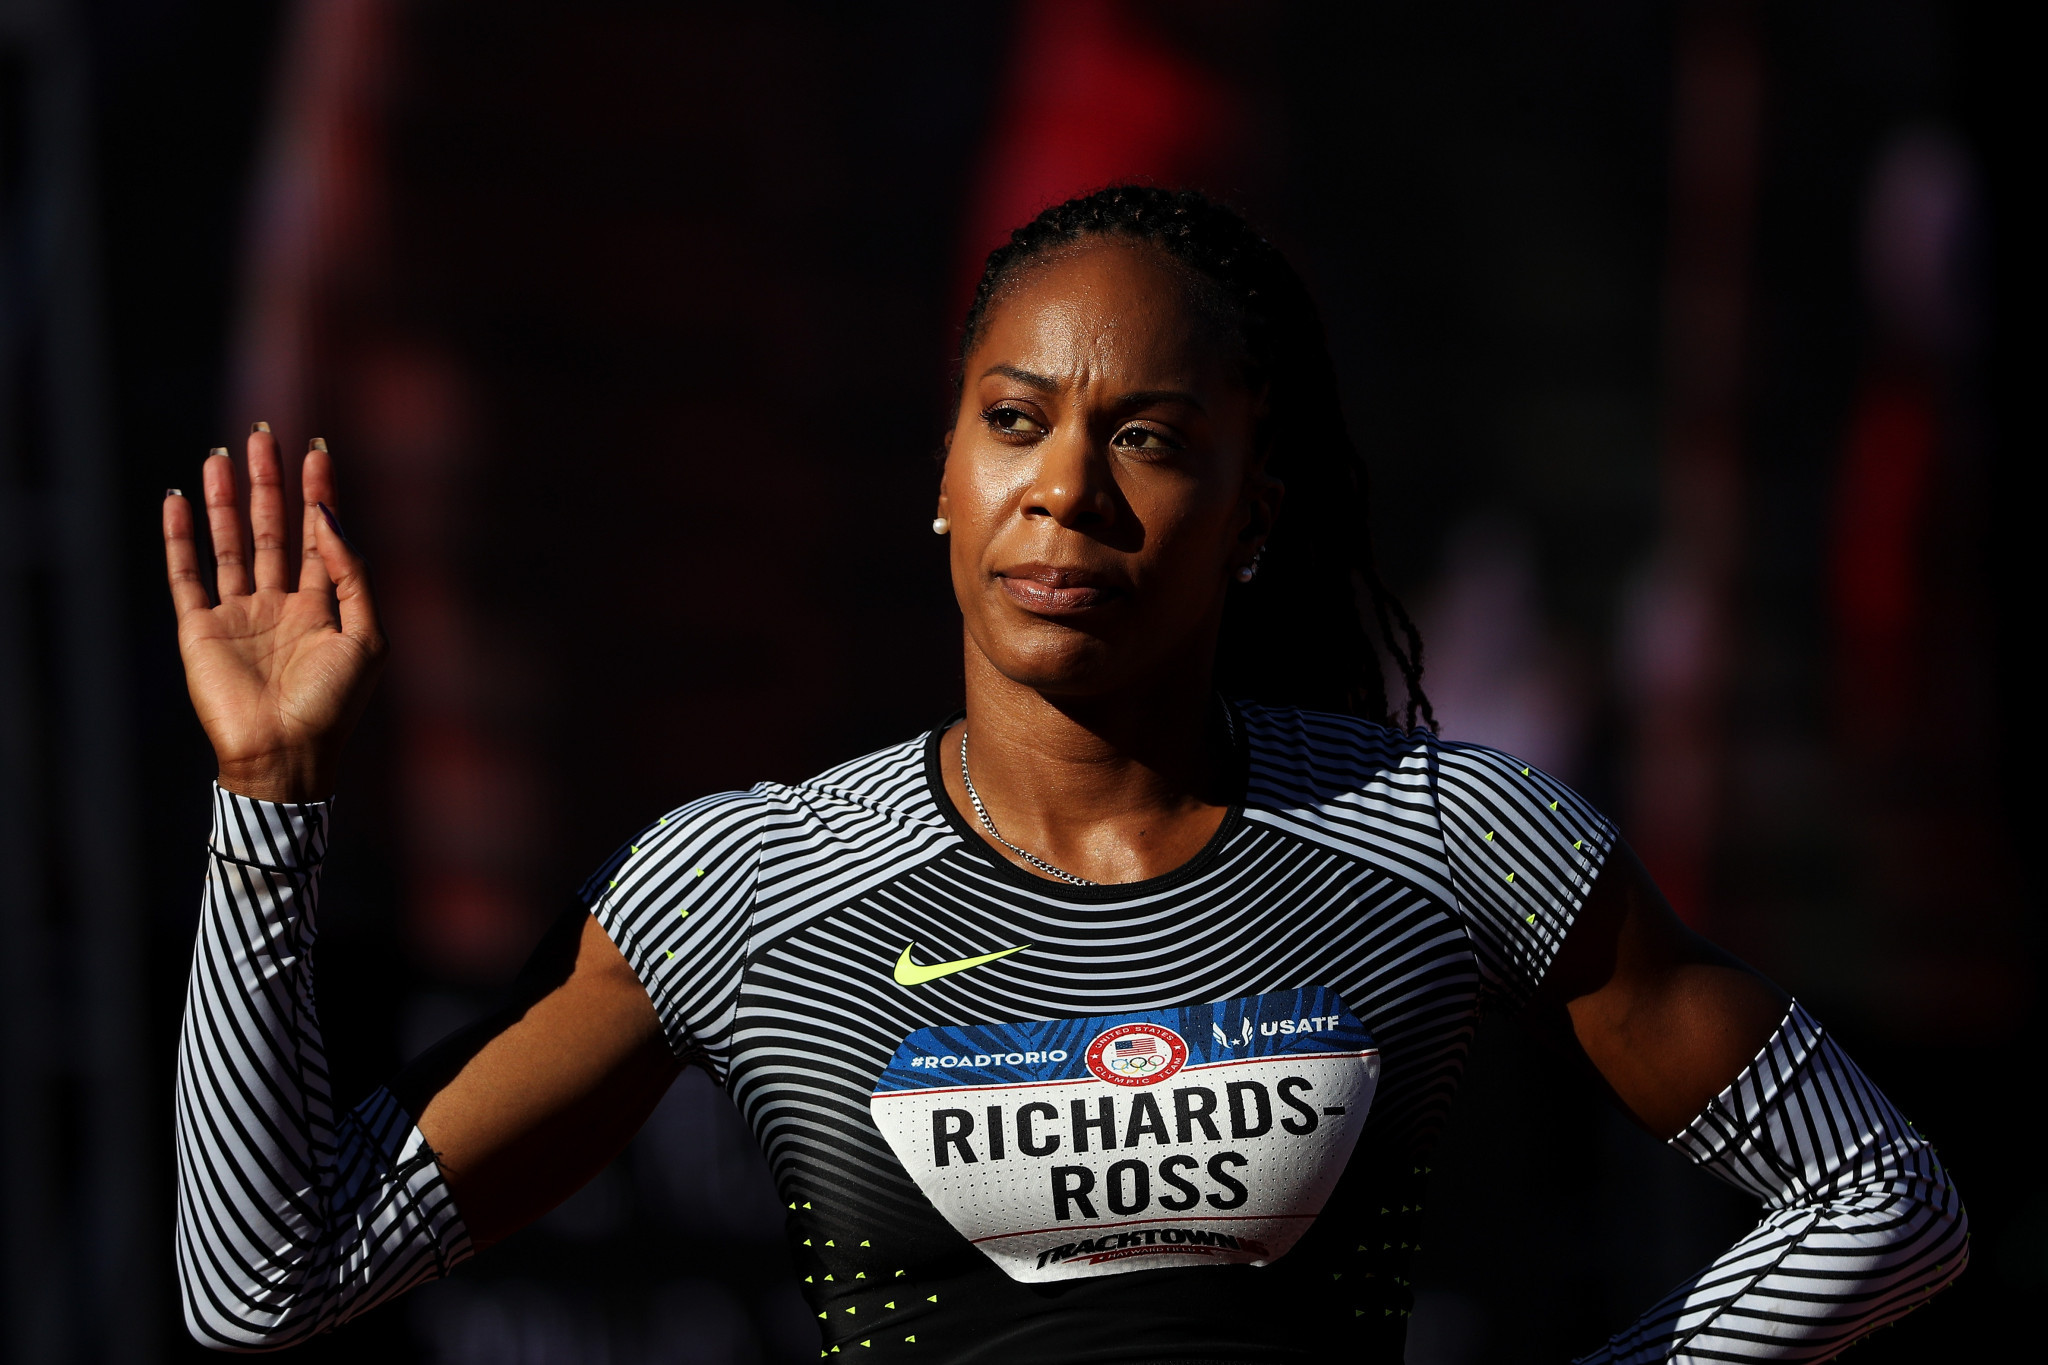 Four-time Olympic gold medallist Richards-Ross appointed to Oregon 2022 Board